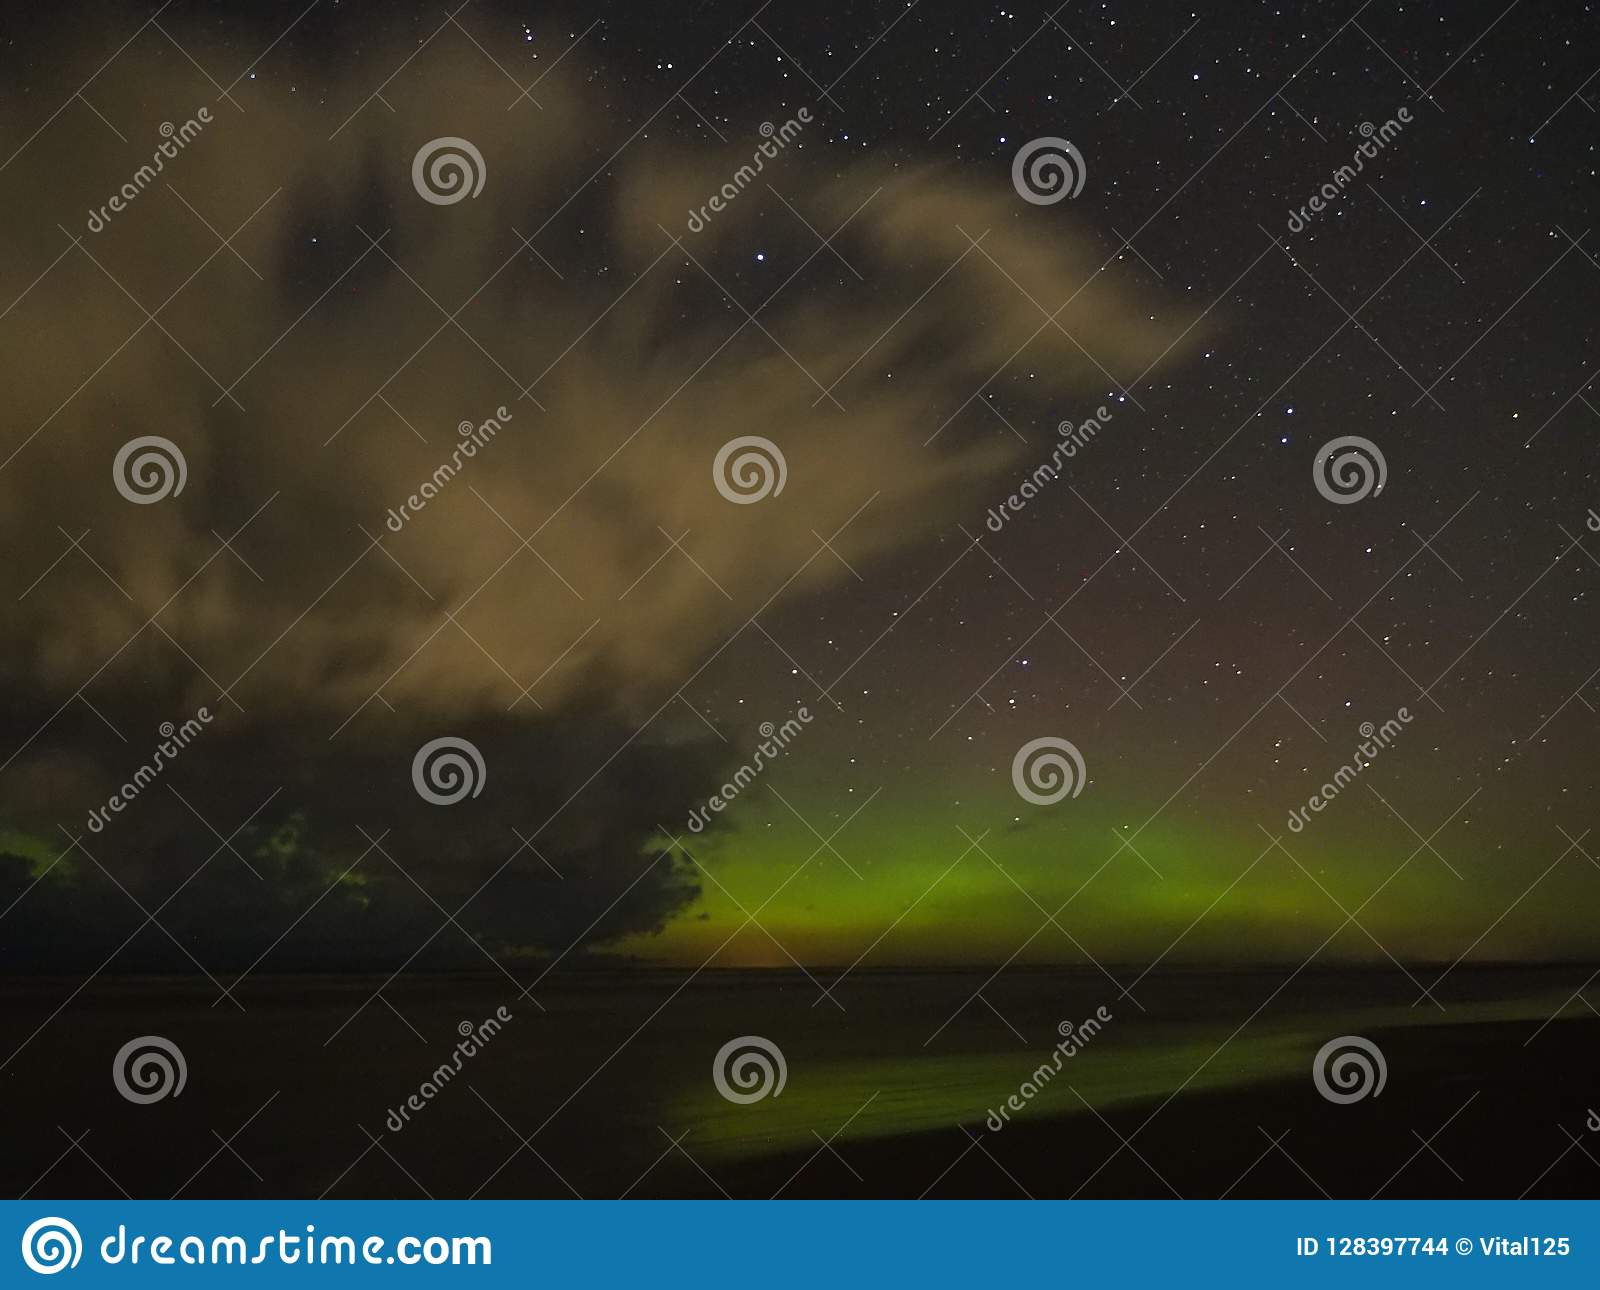 Clouds aurora polar lights big dipper constellation stars